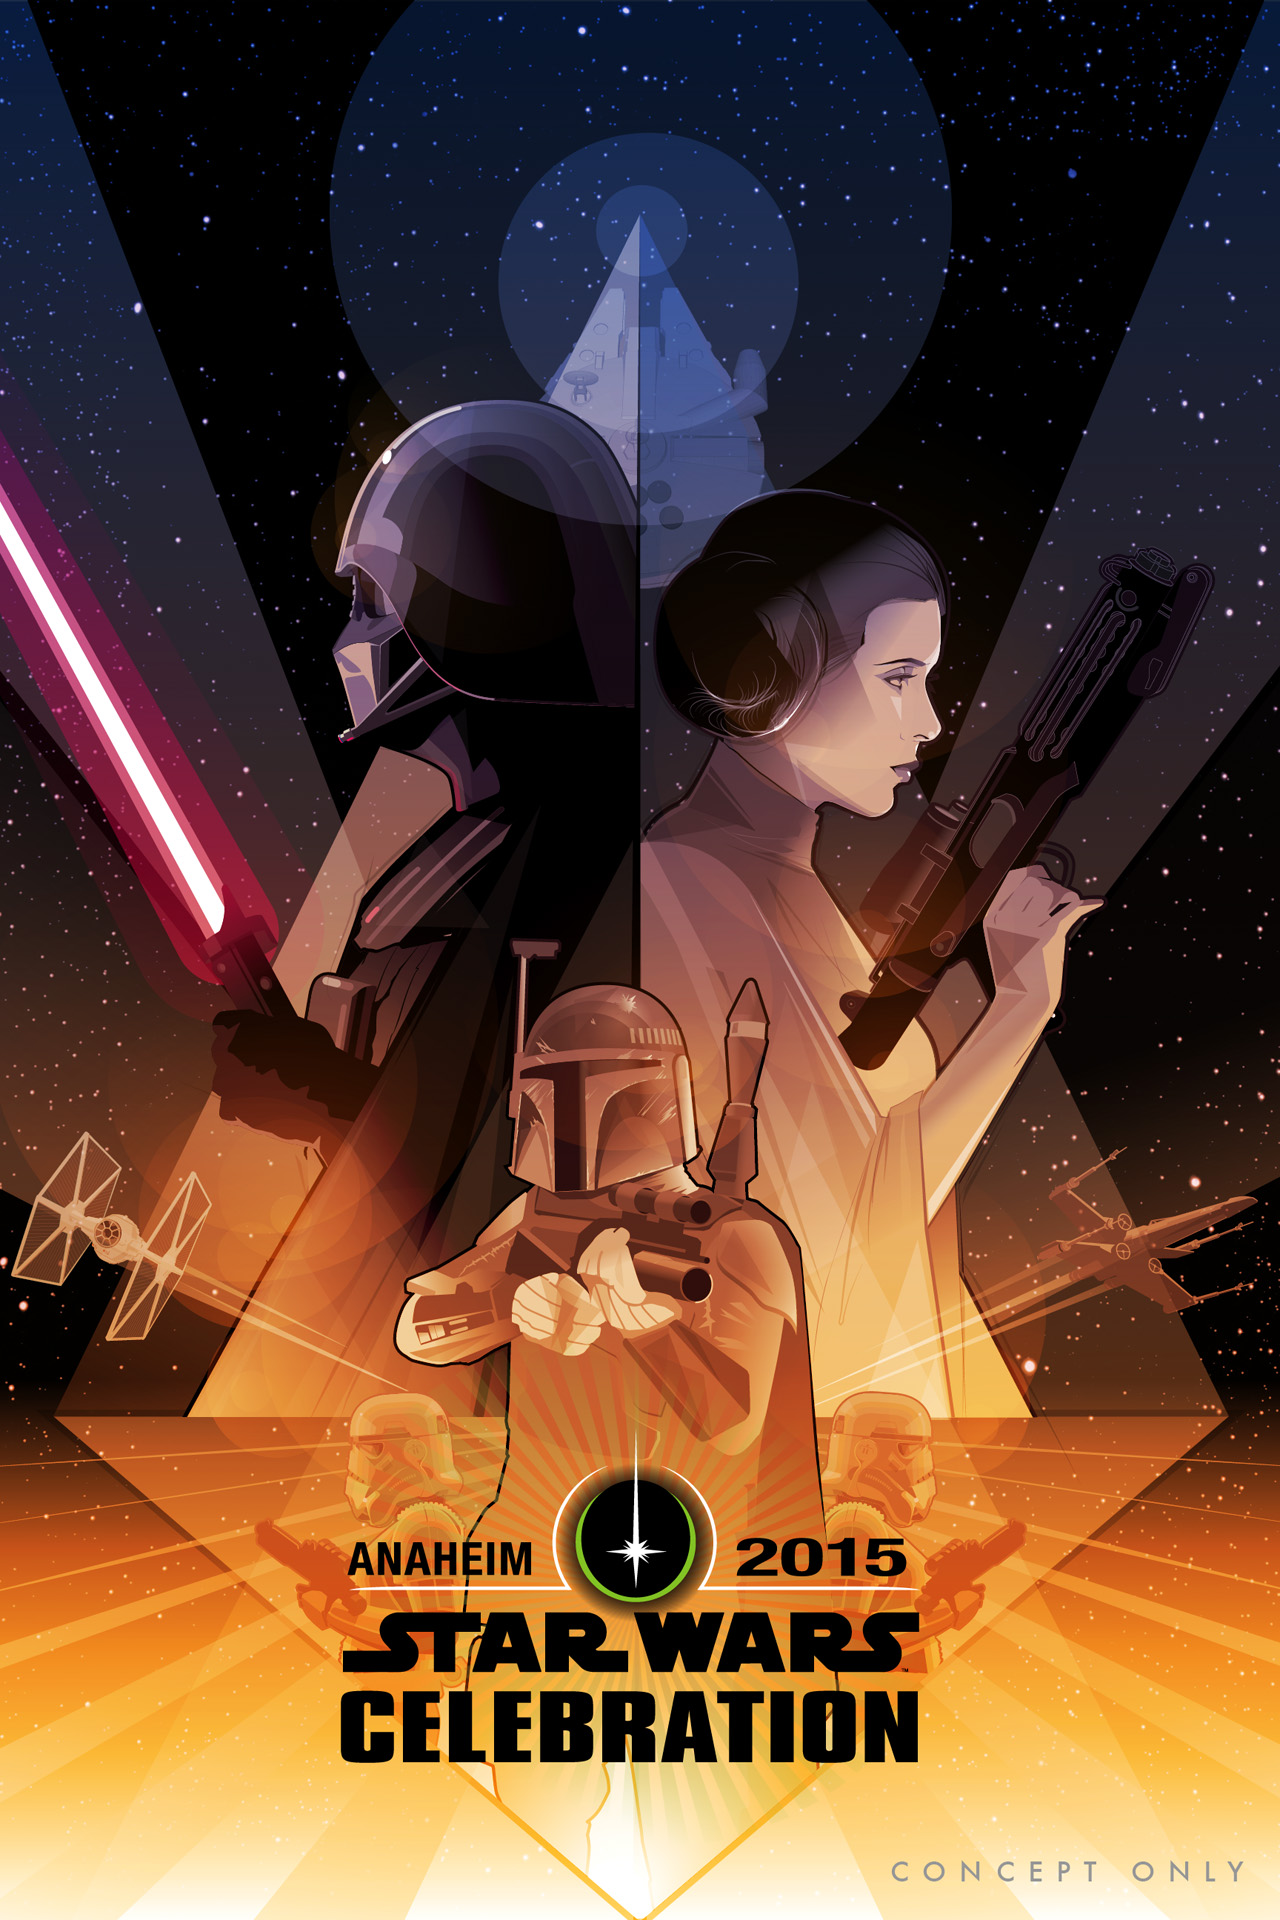 Craig Drake On His Star Wars Celebration Poster